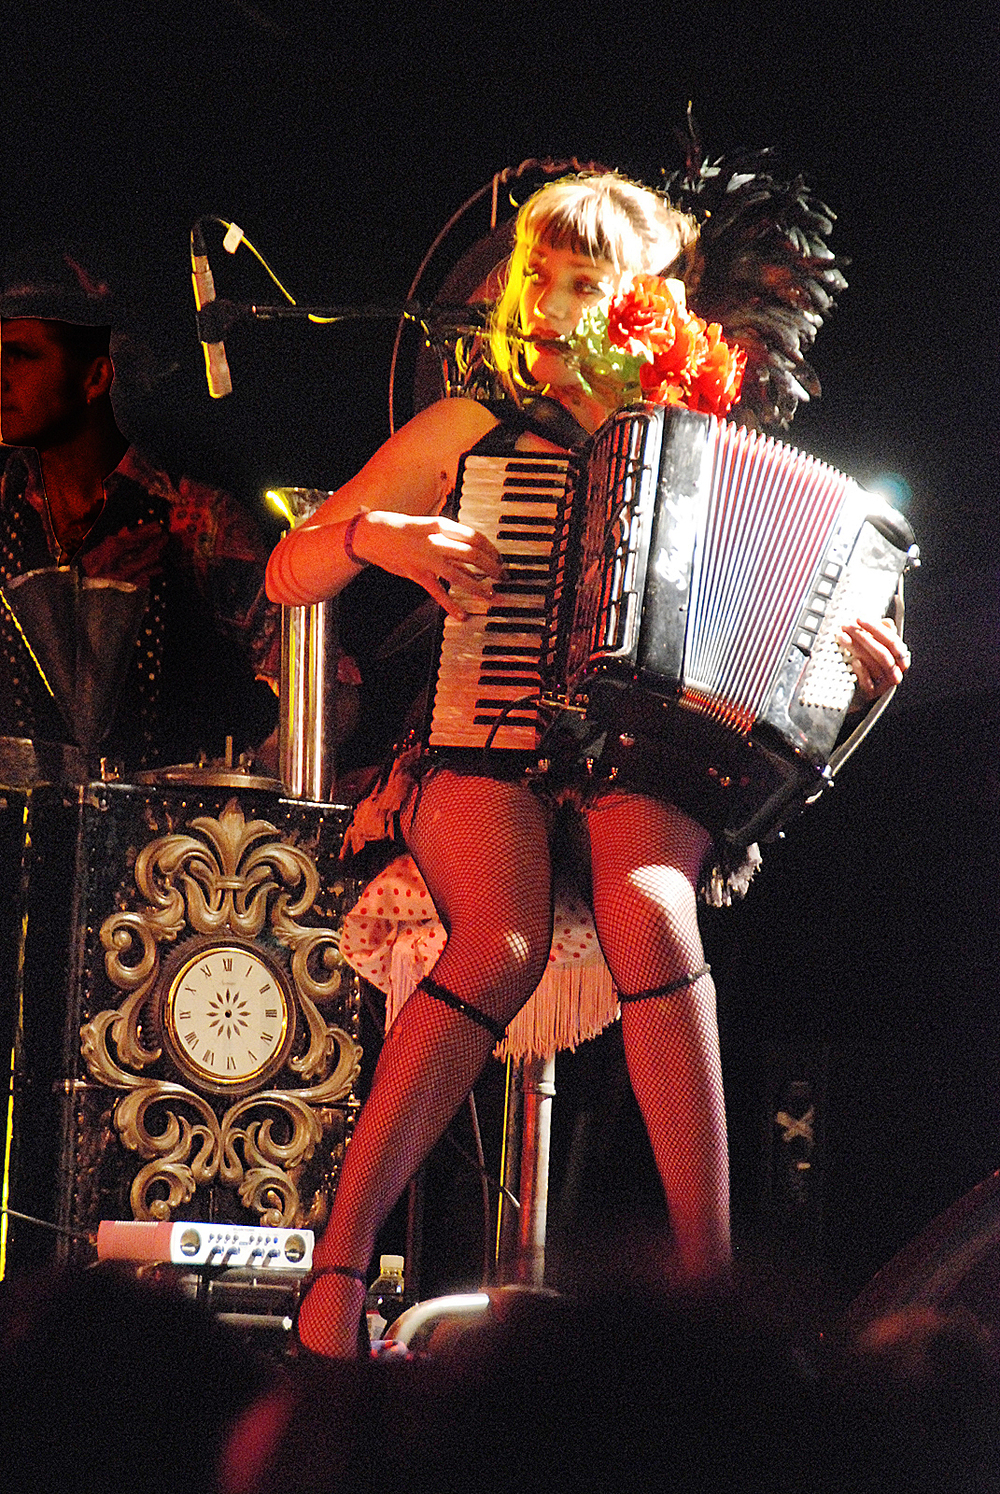 The accordion girl broke my heart